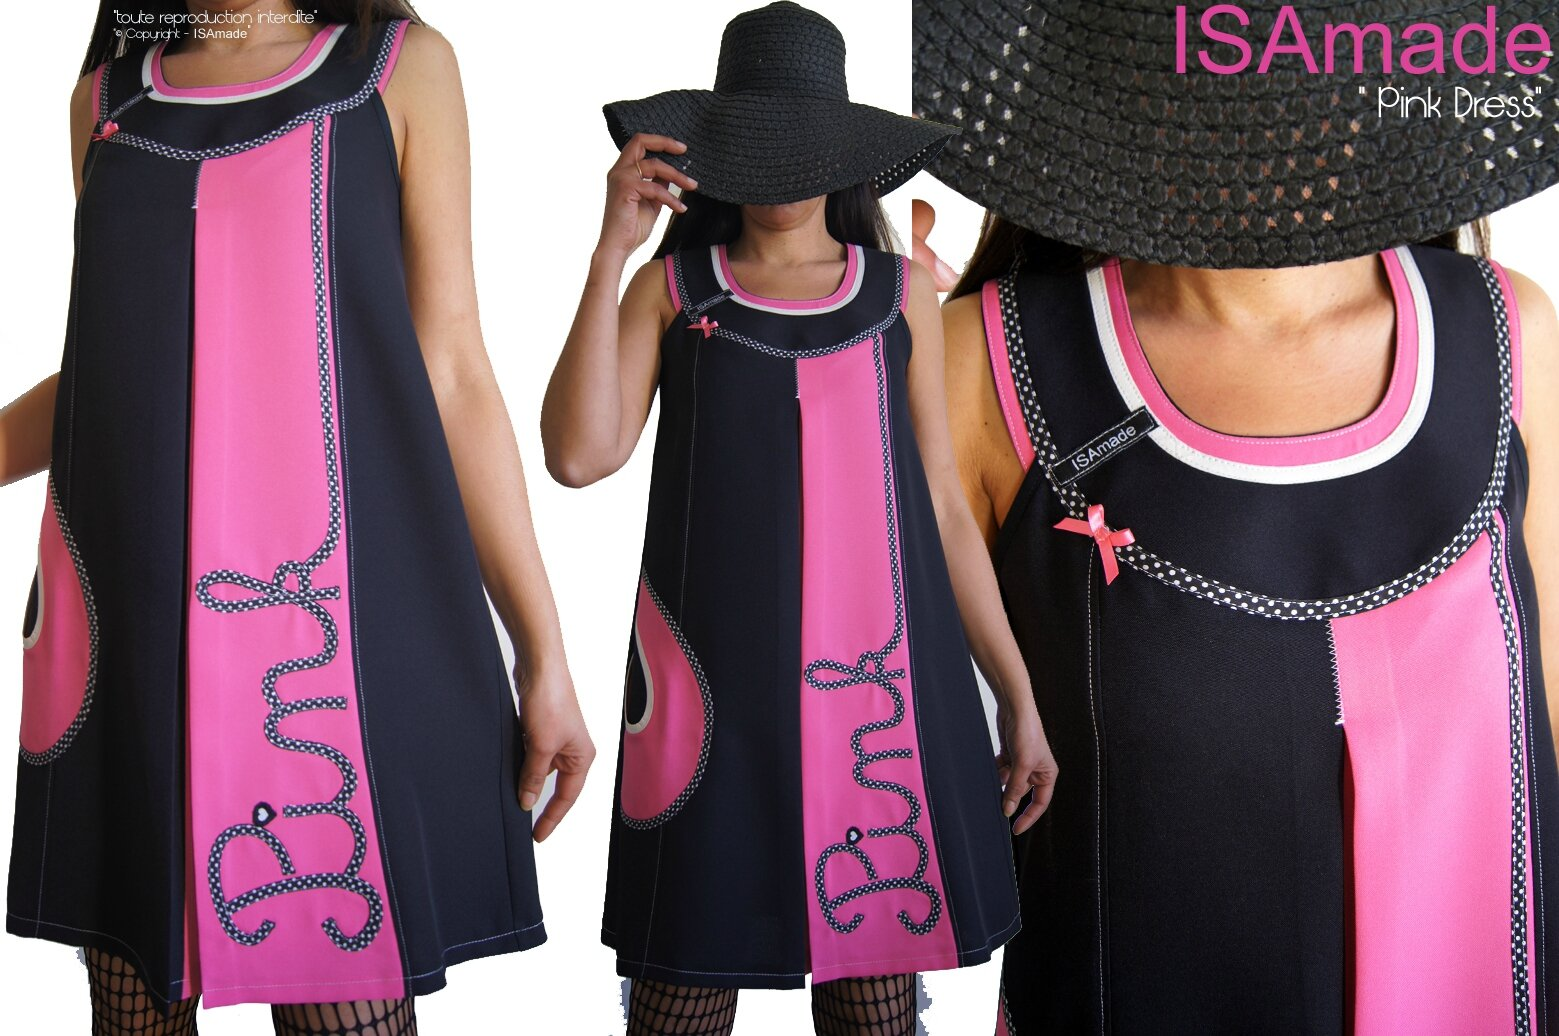 MOD 389A Robe Rose Noir Trapèze à pois bicolore tunique Graphique sixties made in France tendance 2016